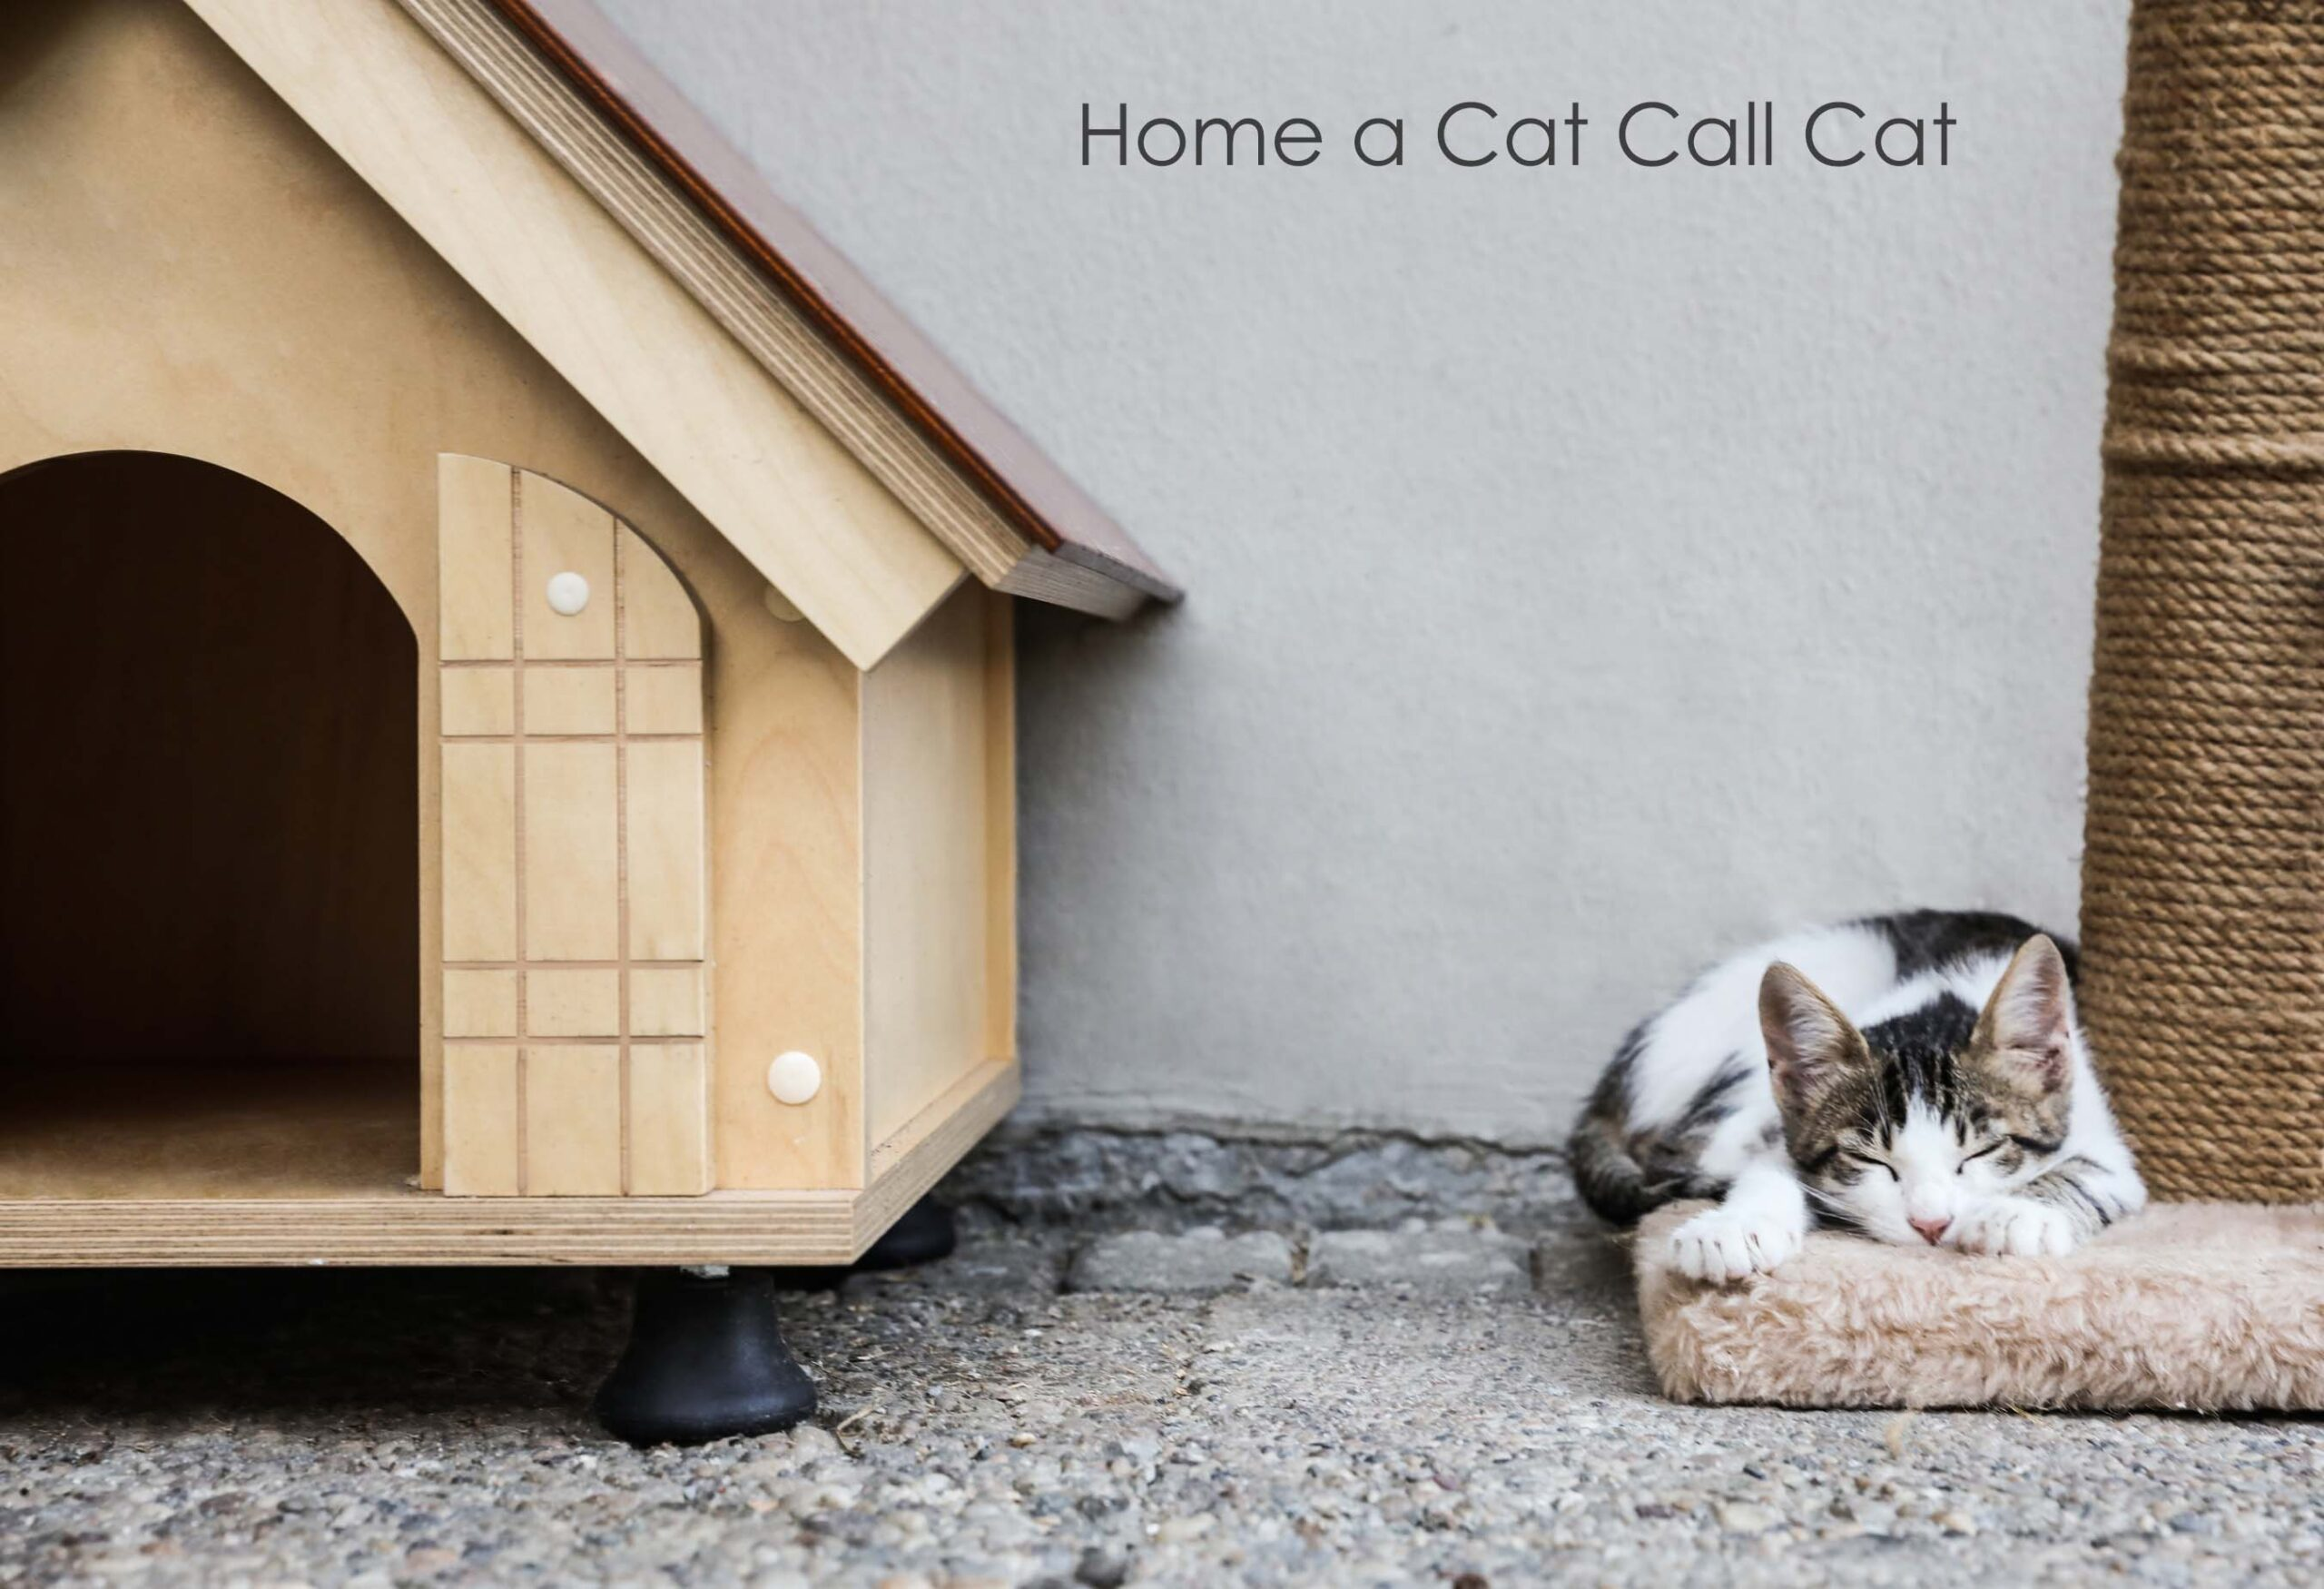 Give a Hastings Cat a home